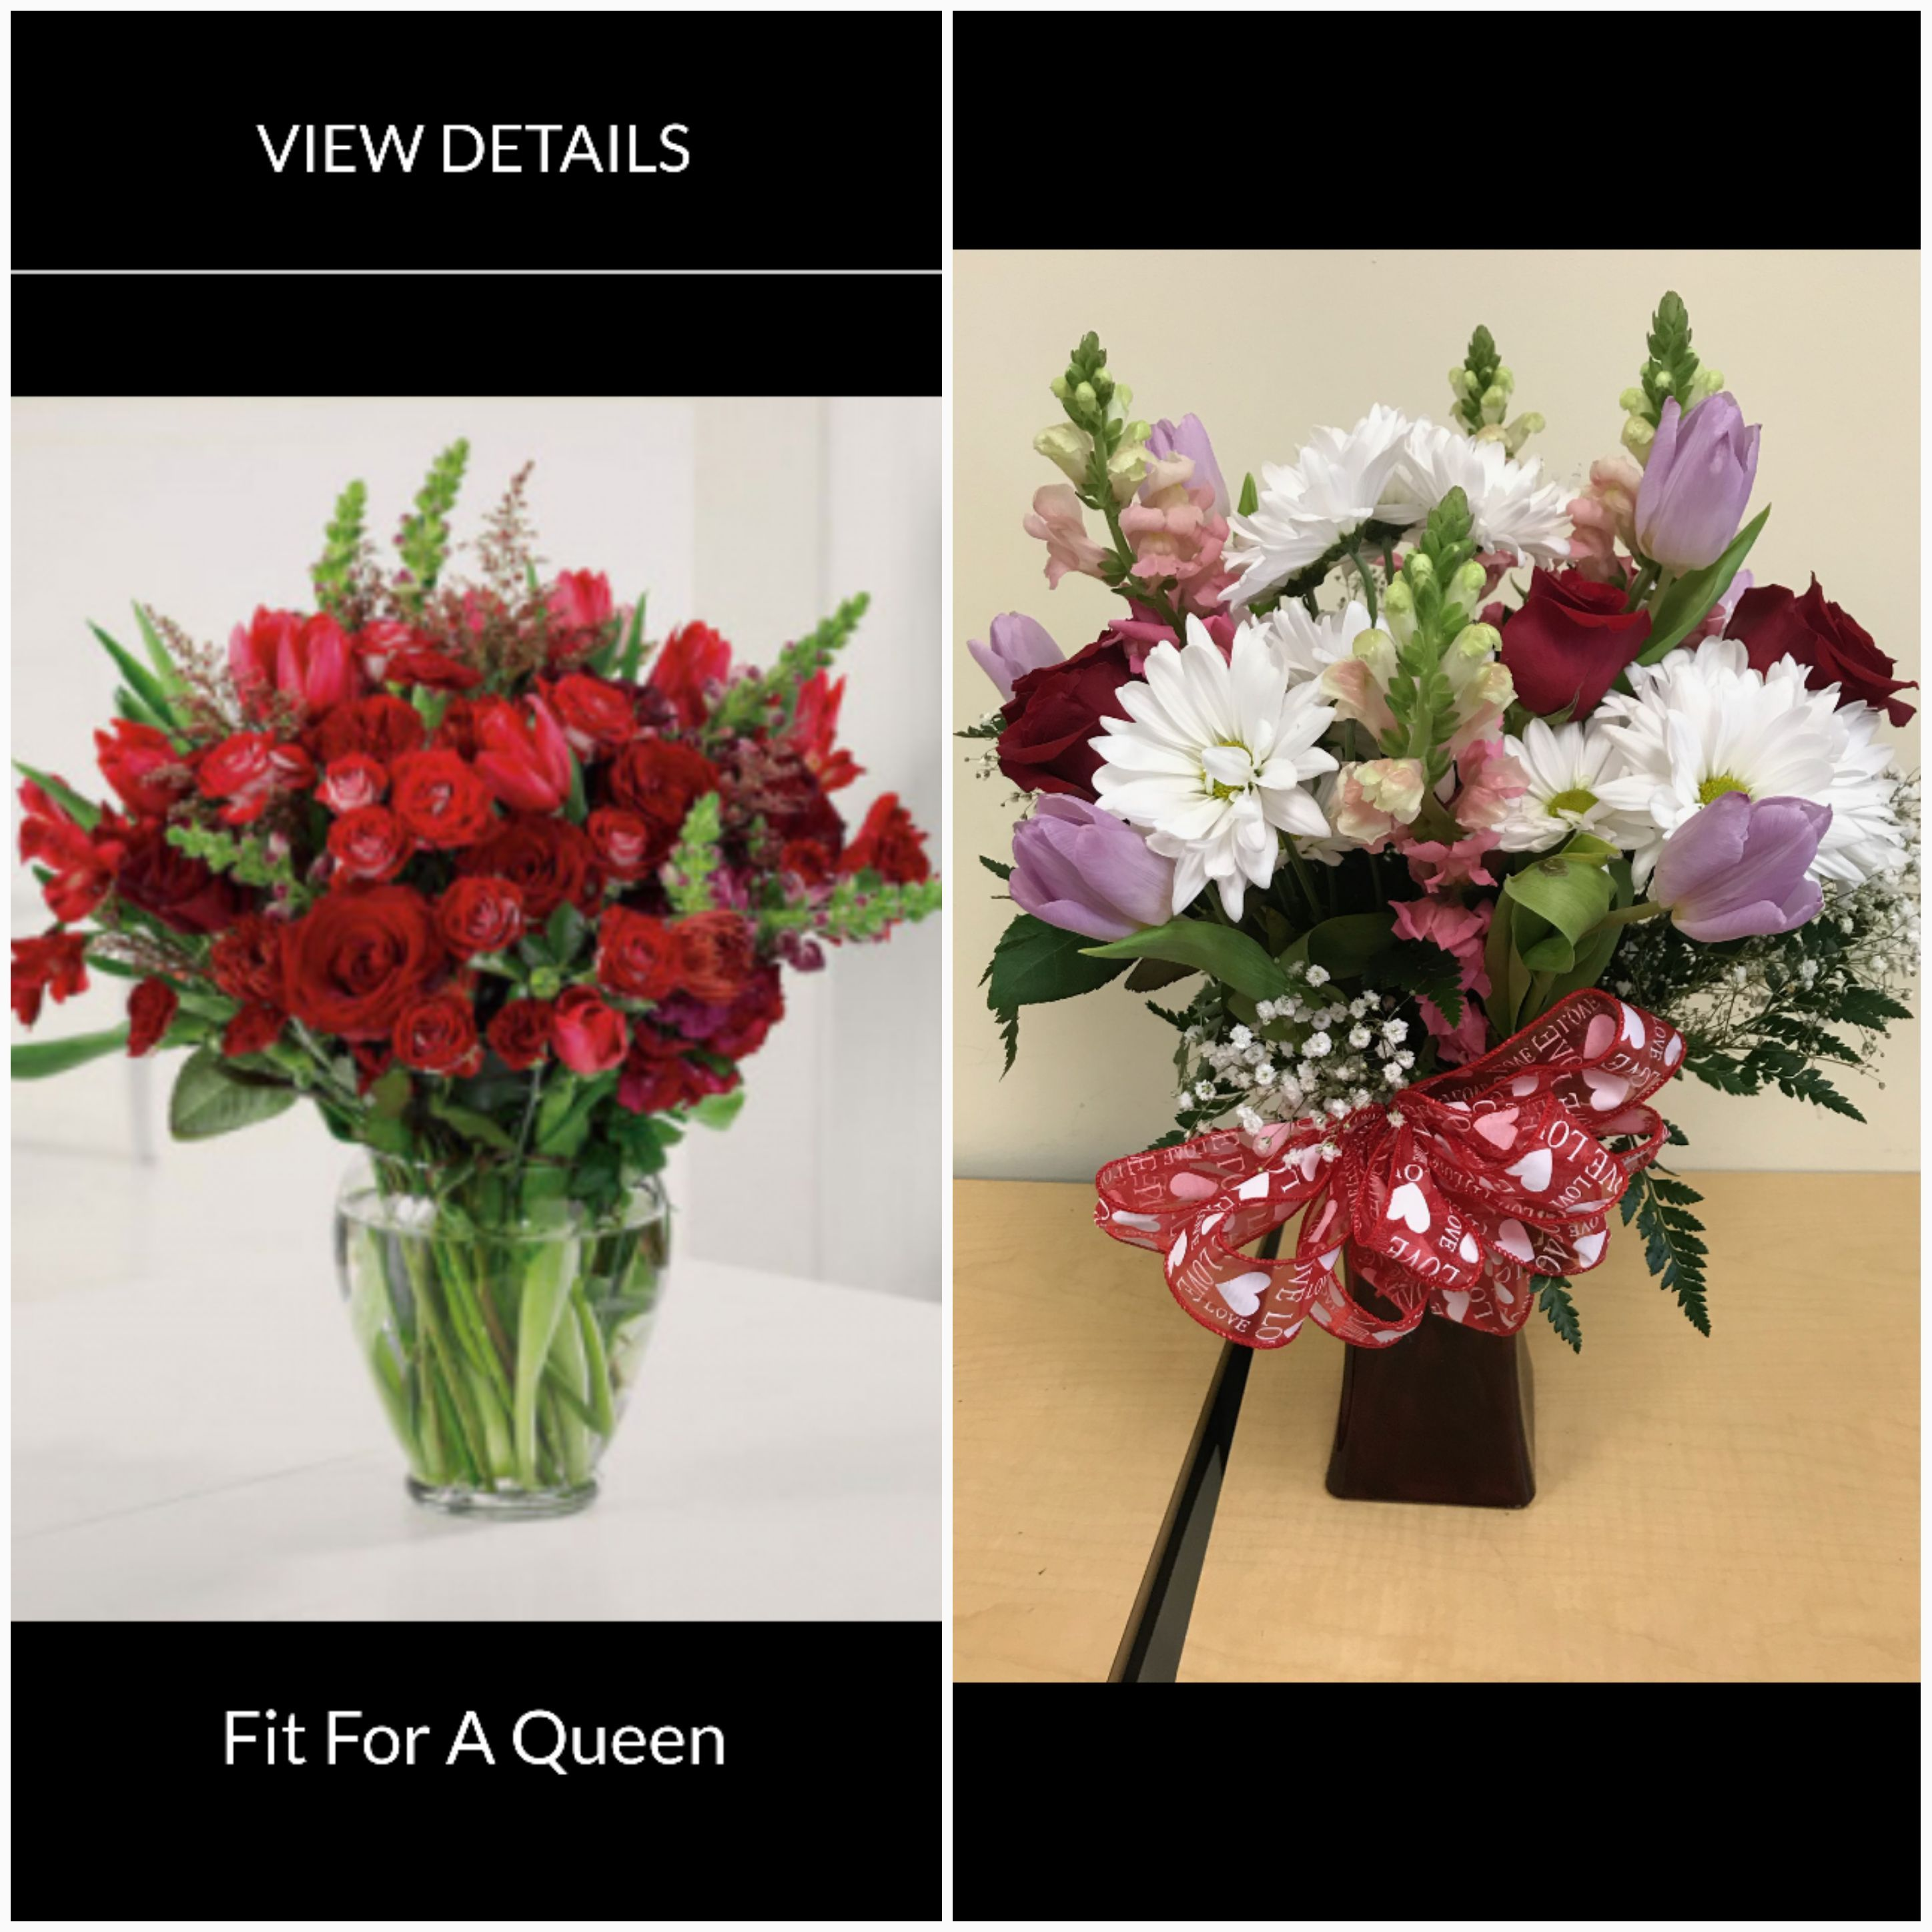 What I Ordered And She Received In 2020 Morning Humor Best Flower Delivery Flower Delivery Uk